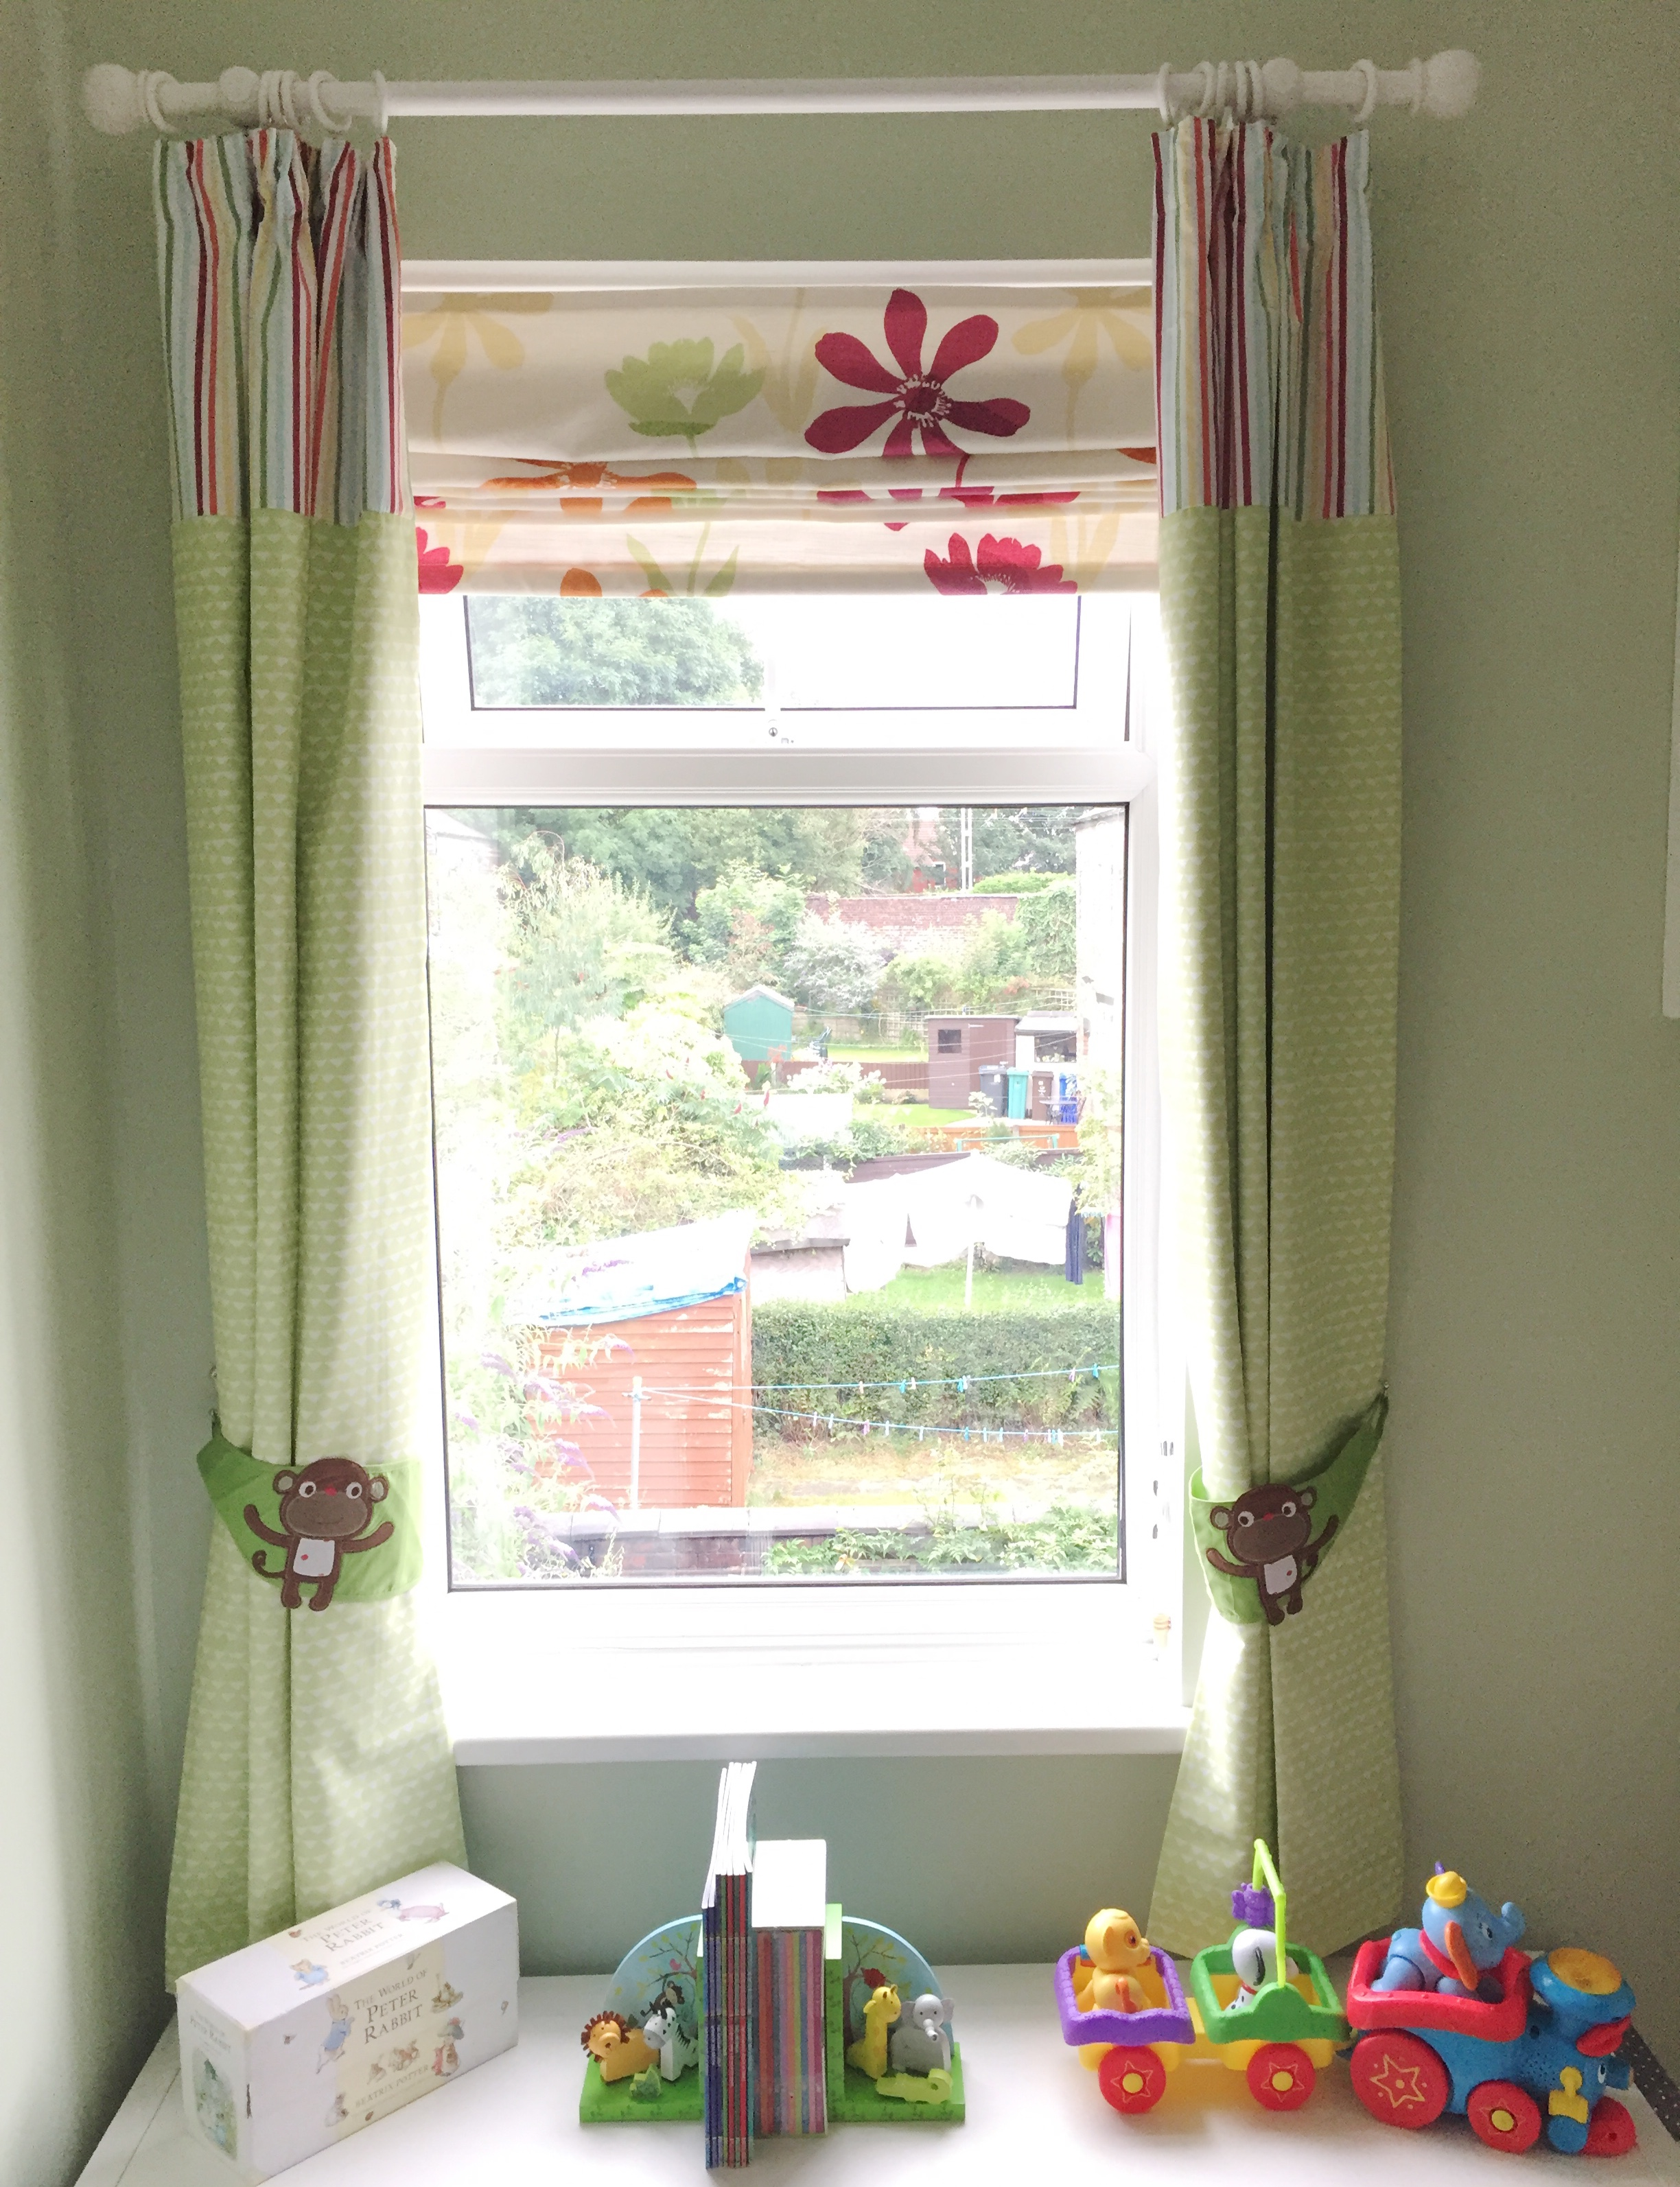 Nursery window with green curtains, monkey tie backs and storage unit underneath